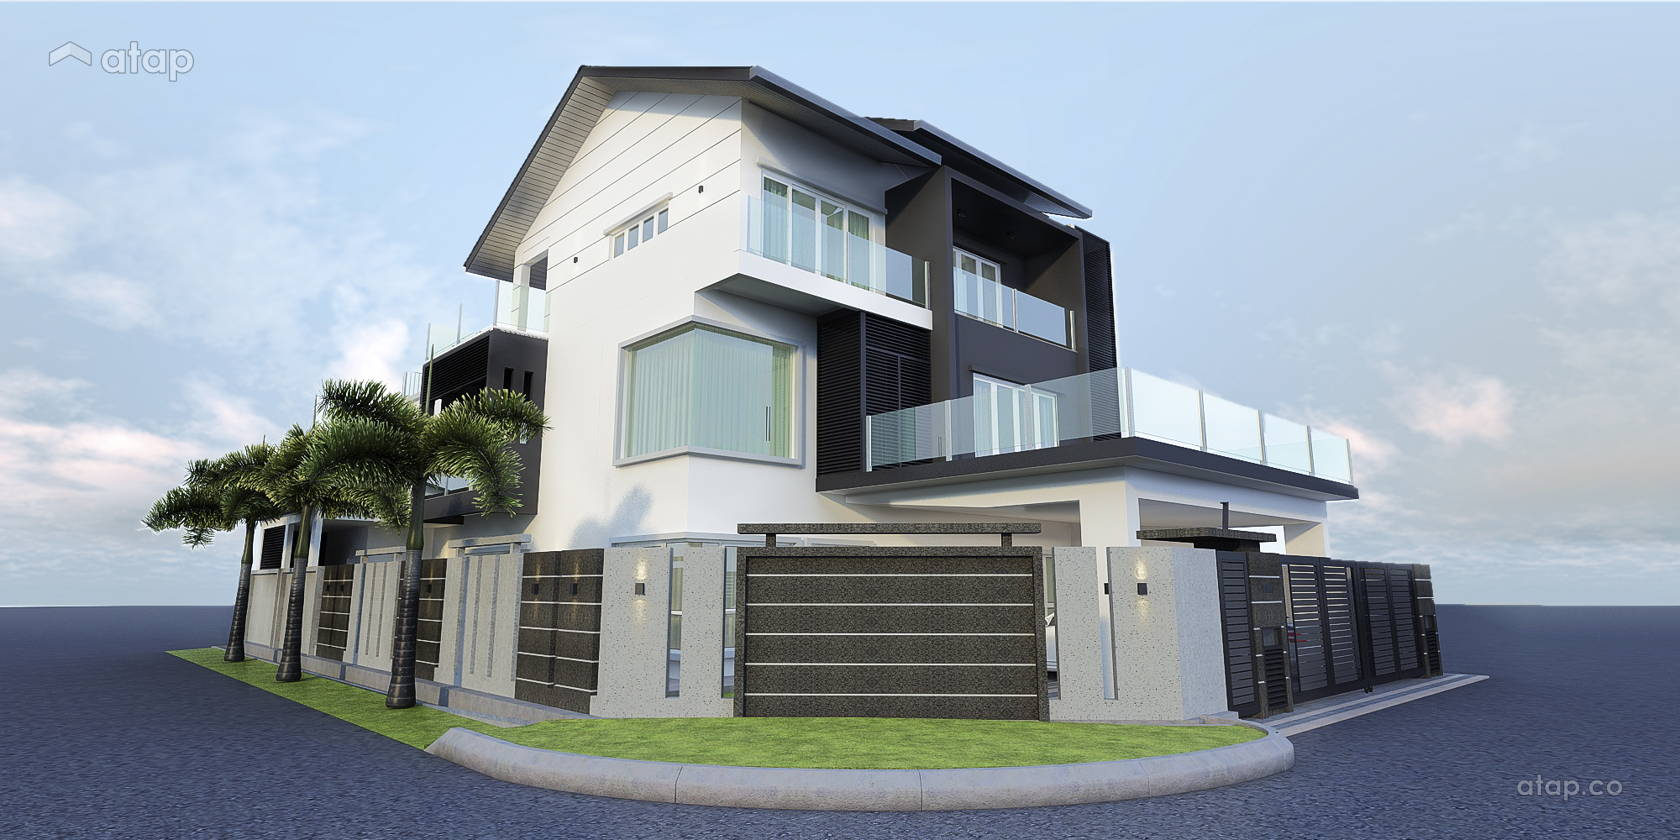 Contemporary Modern Exterior semi-detached design ideas ... on corner lot ranch house plans, corner lot duplex house plans, corner lot landscaping plans, corner lot house designs, corner lot log house plans, corner lot craftsman house plans, contemporary prairie house plans, corner lot pool plans,